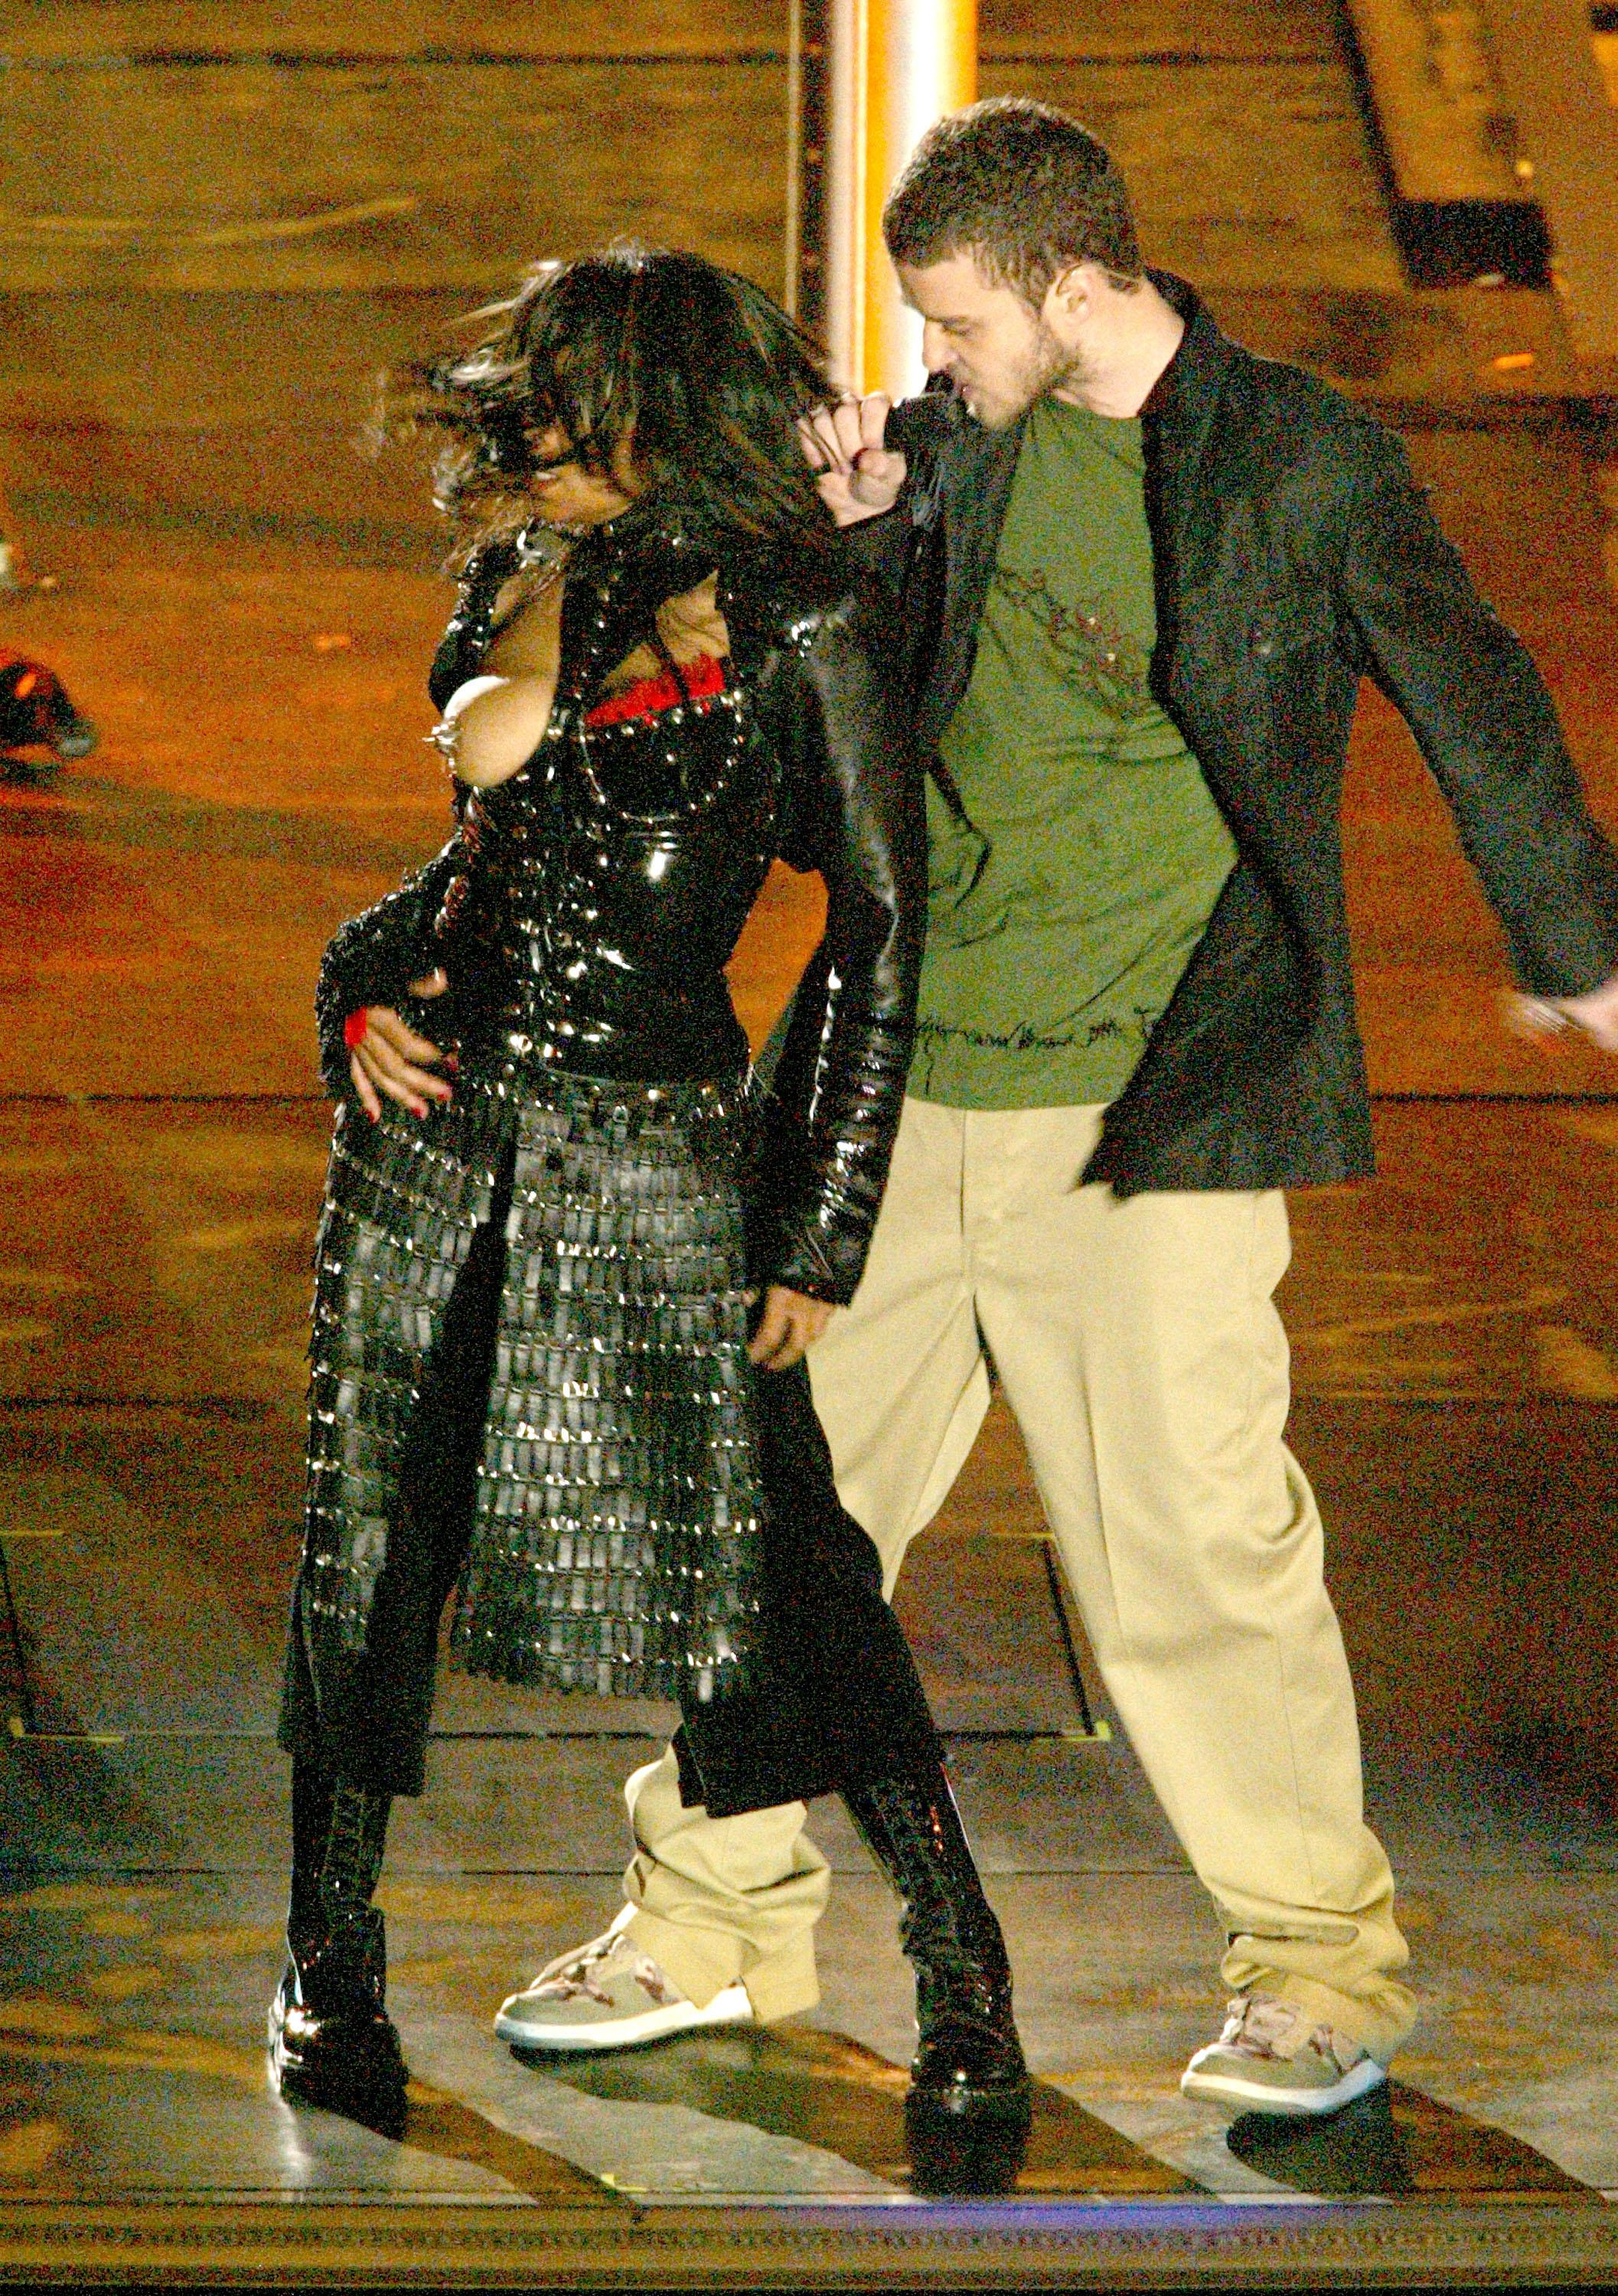 Justin's last Super Bowl performance was a controversial one in 2004 when he ripped off part of Janet Jackson's outfit, exposing her breast